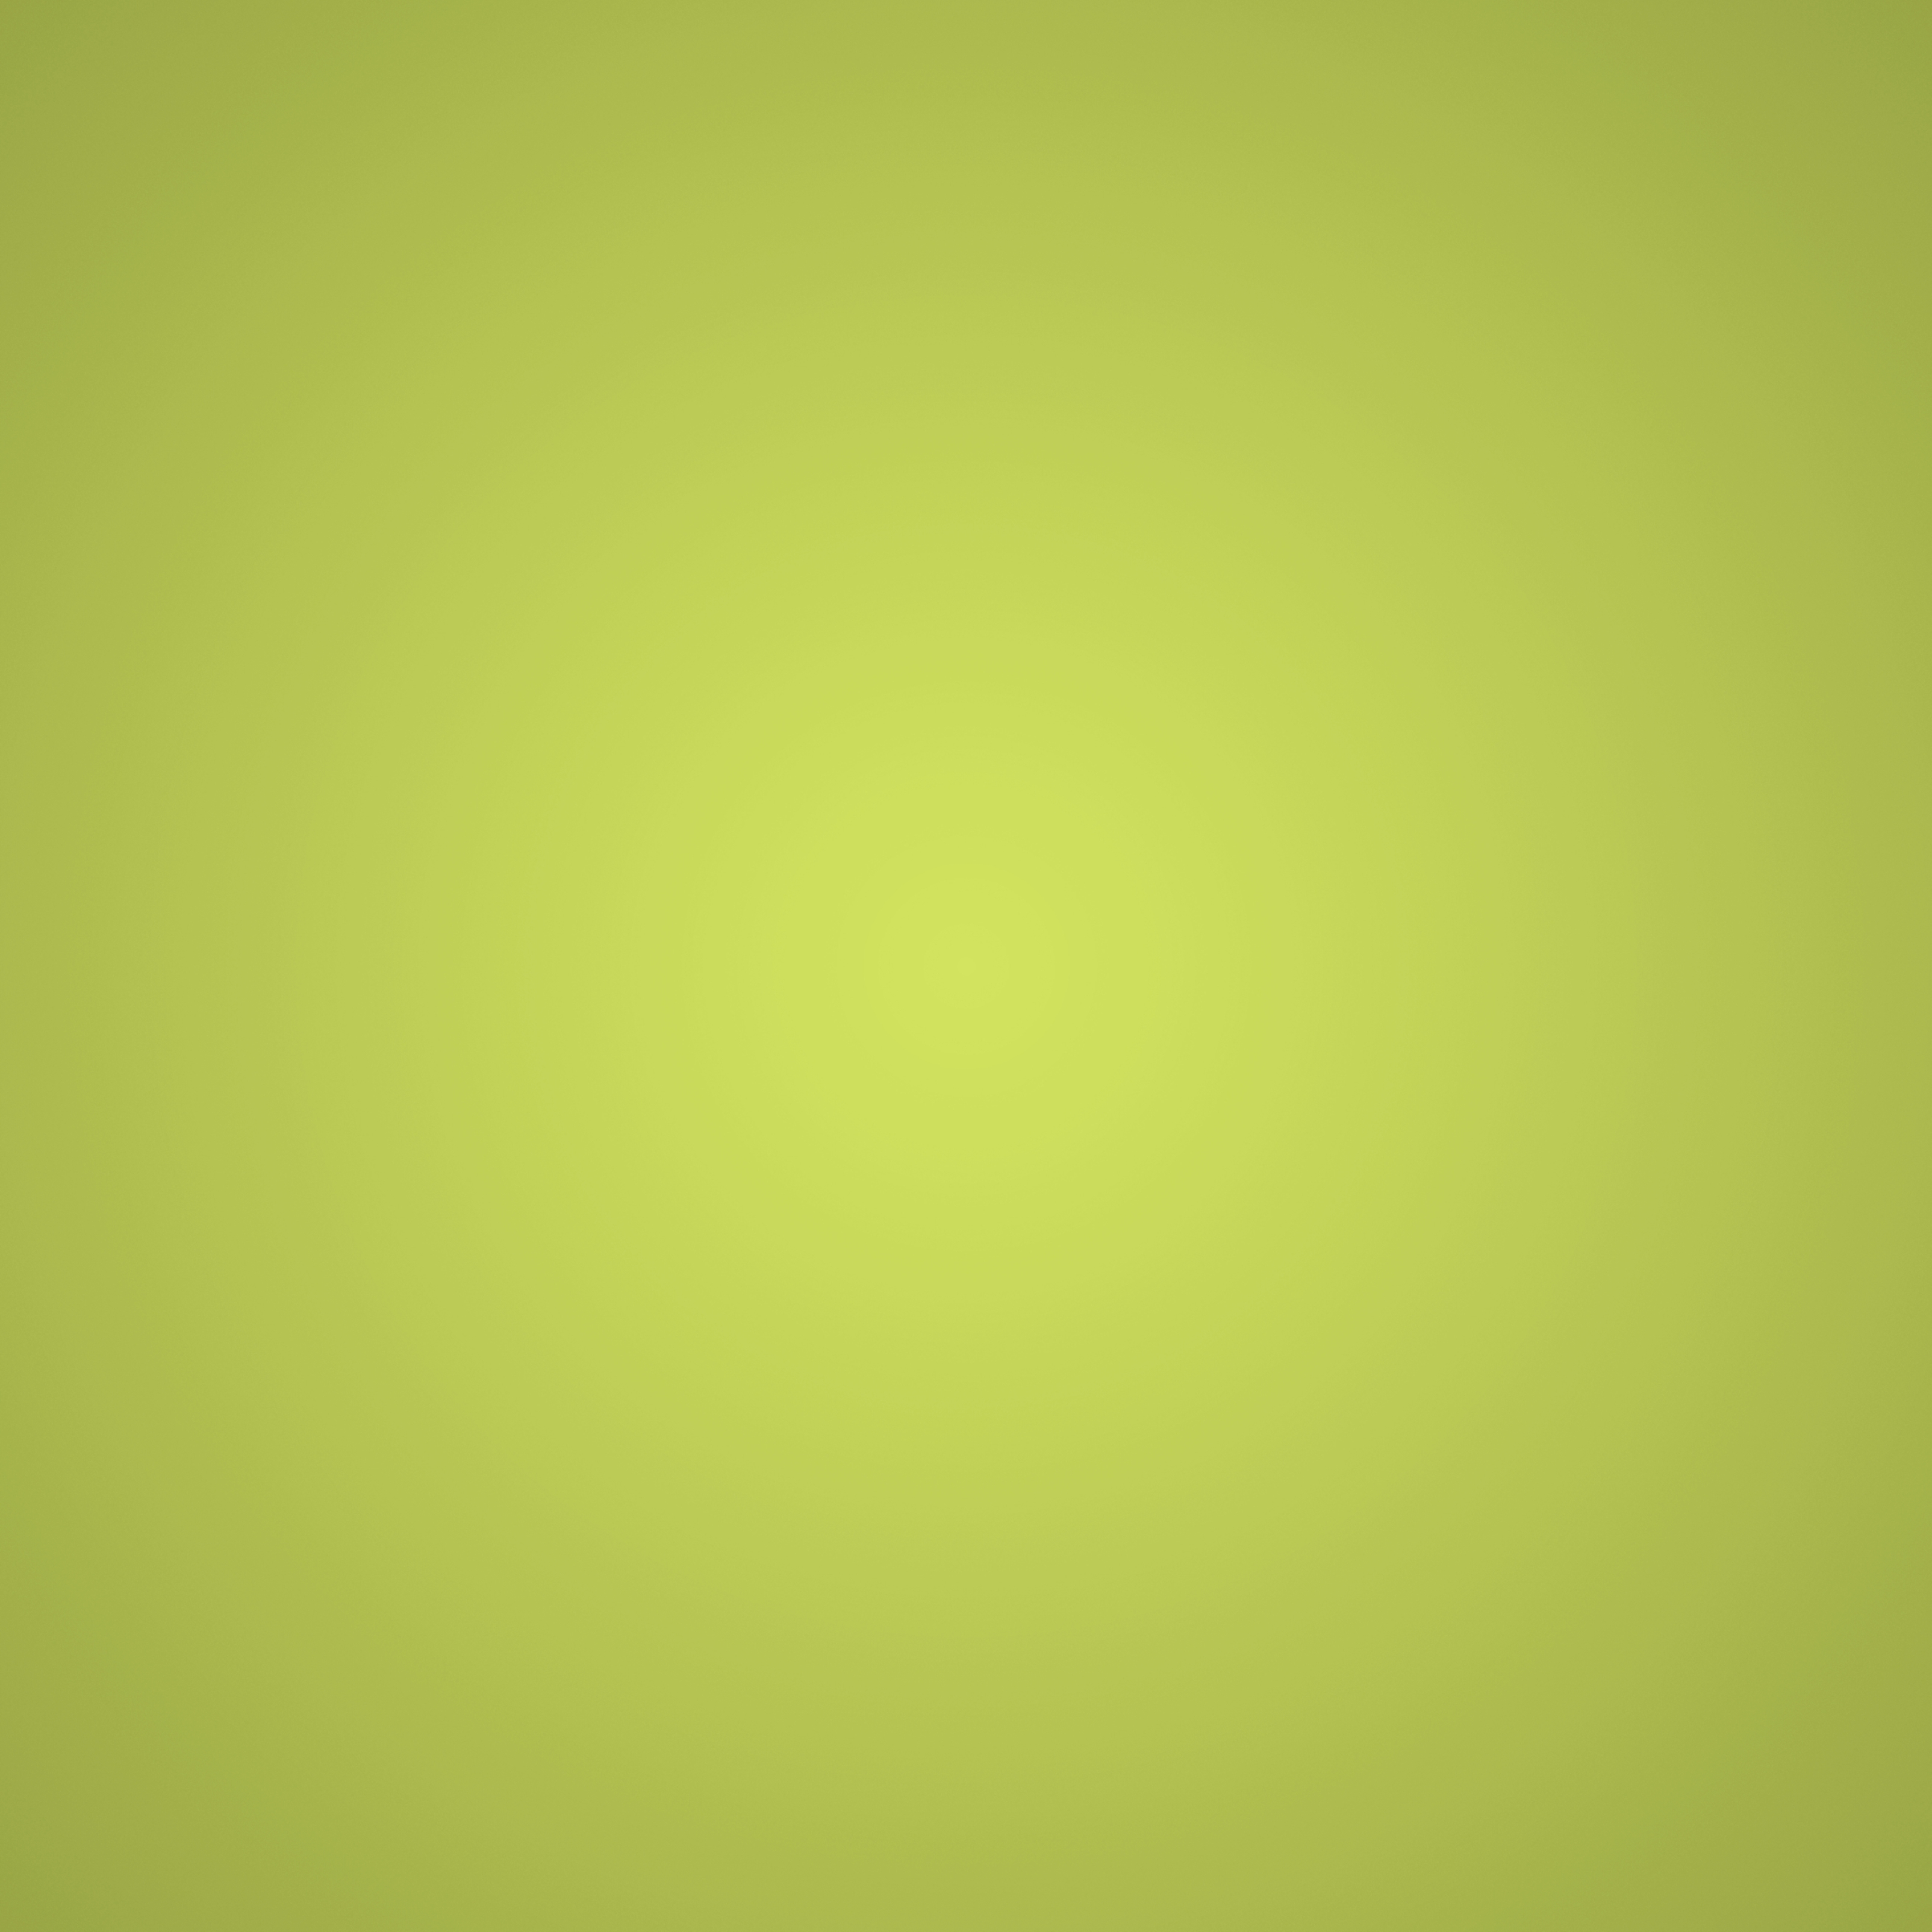 Lime green gradient background iPad Wallpaper